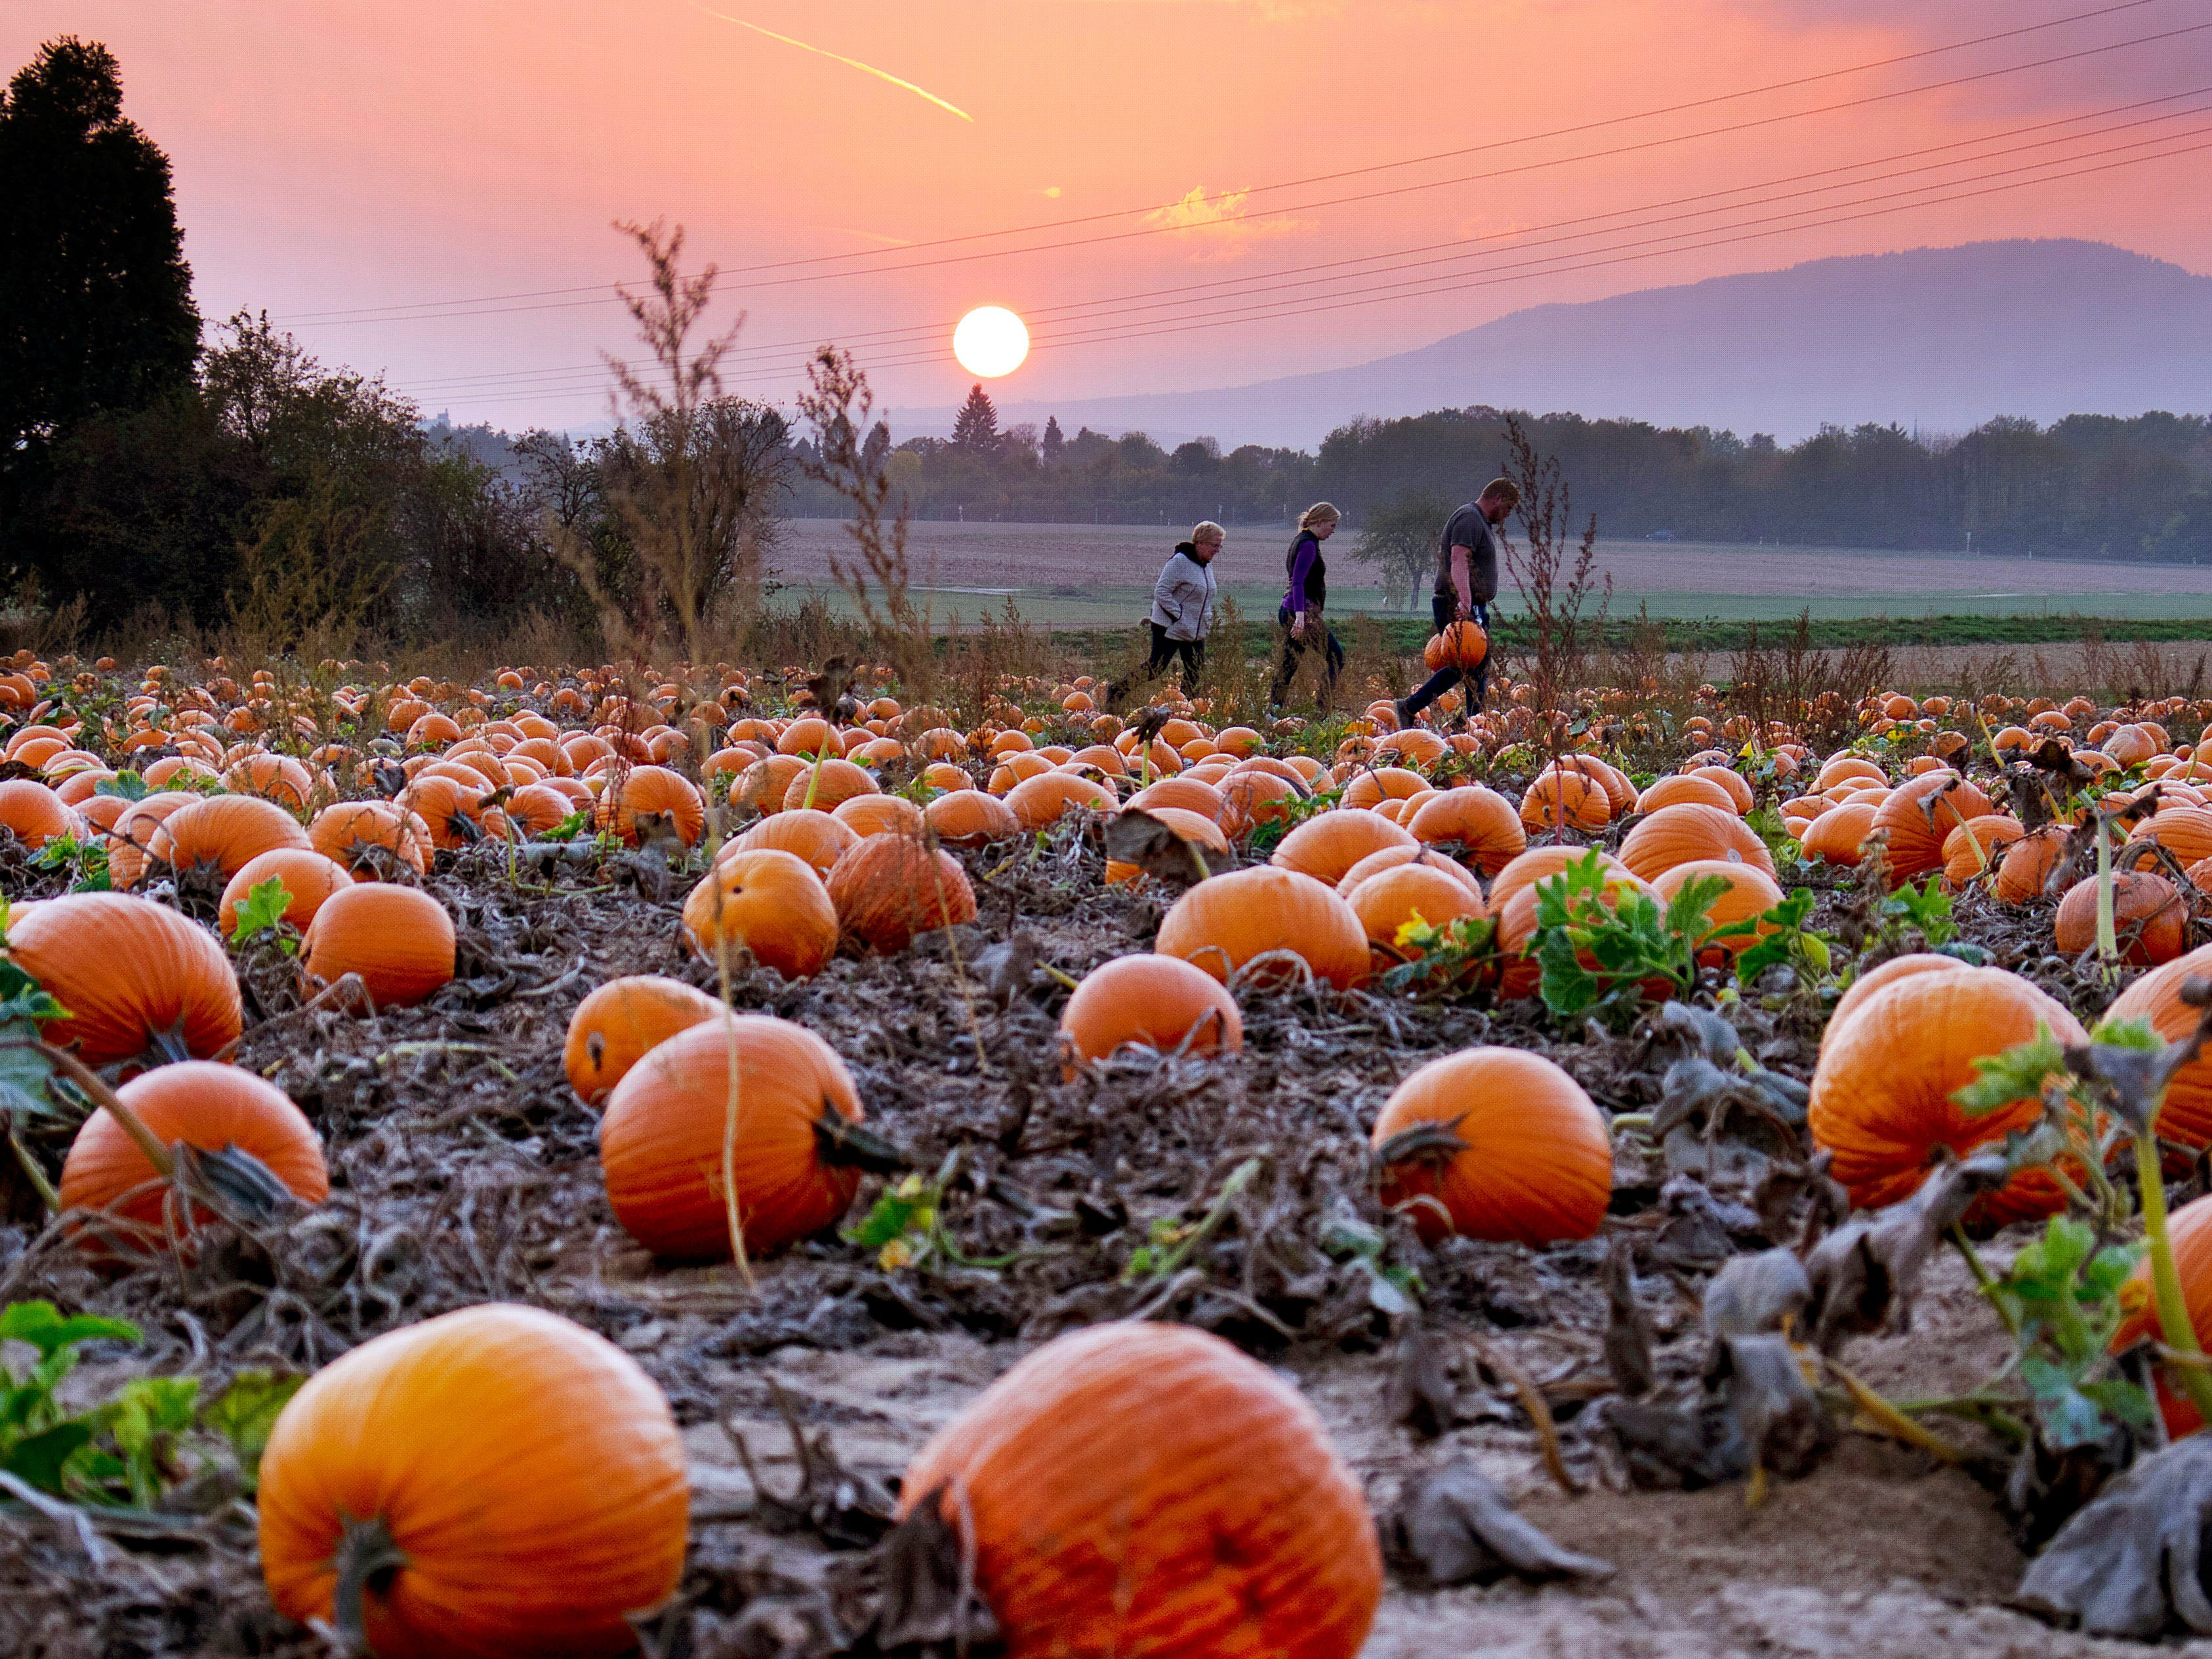 People collect pumpkins on a field in the outskirts of Frankfurt, Germany, as the sun sets Thursday, Oct. 18, 2018.